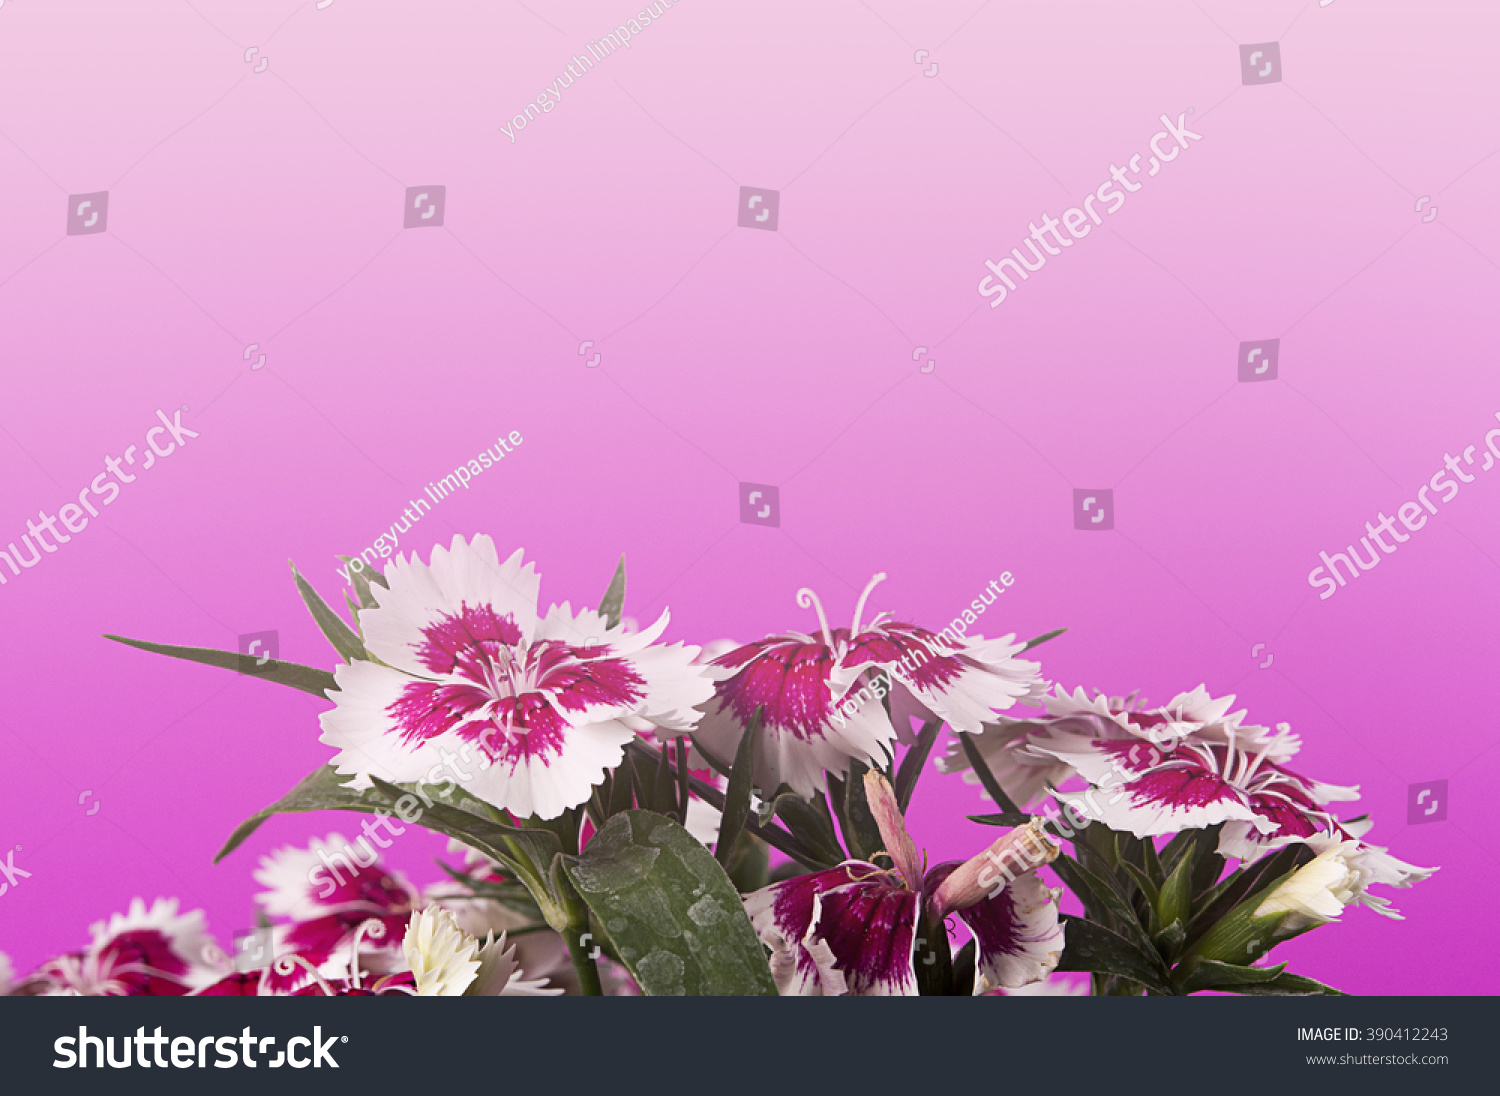 Royalty Free Pink Flower On Pink Backgrounddianthus 390412243